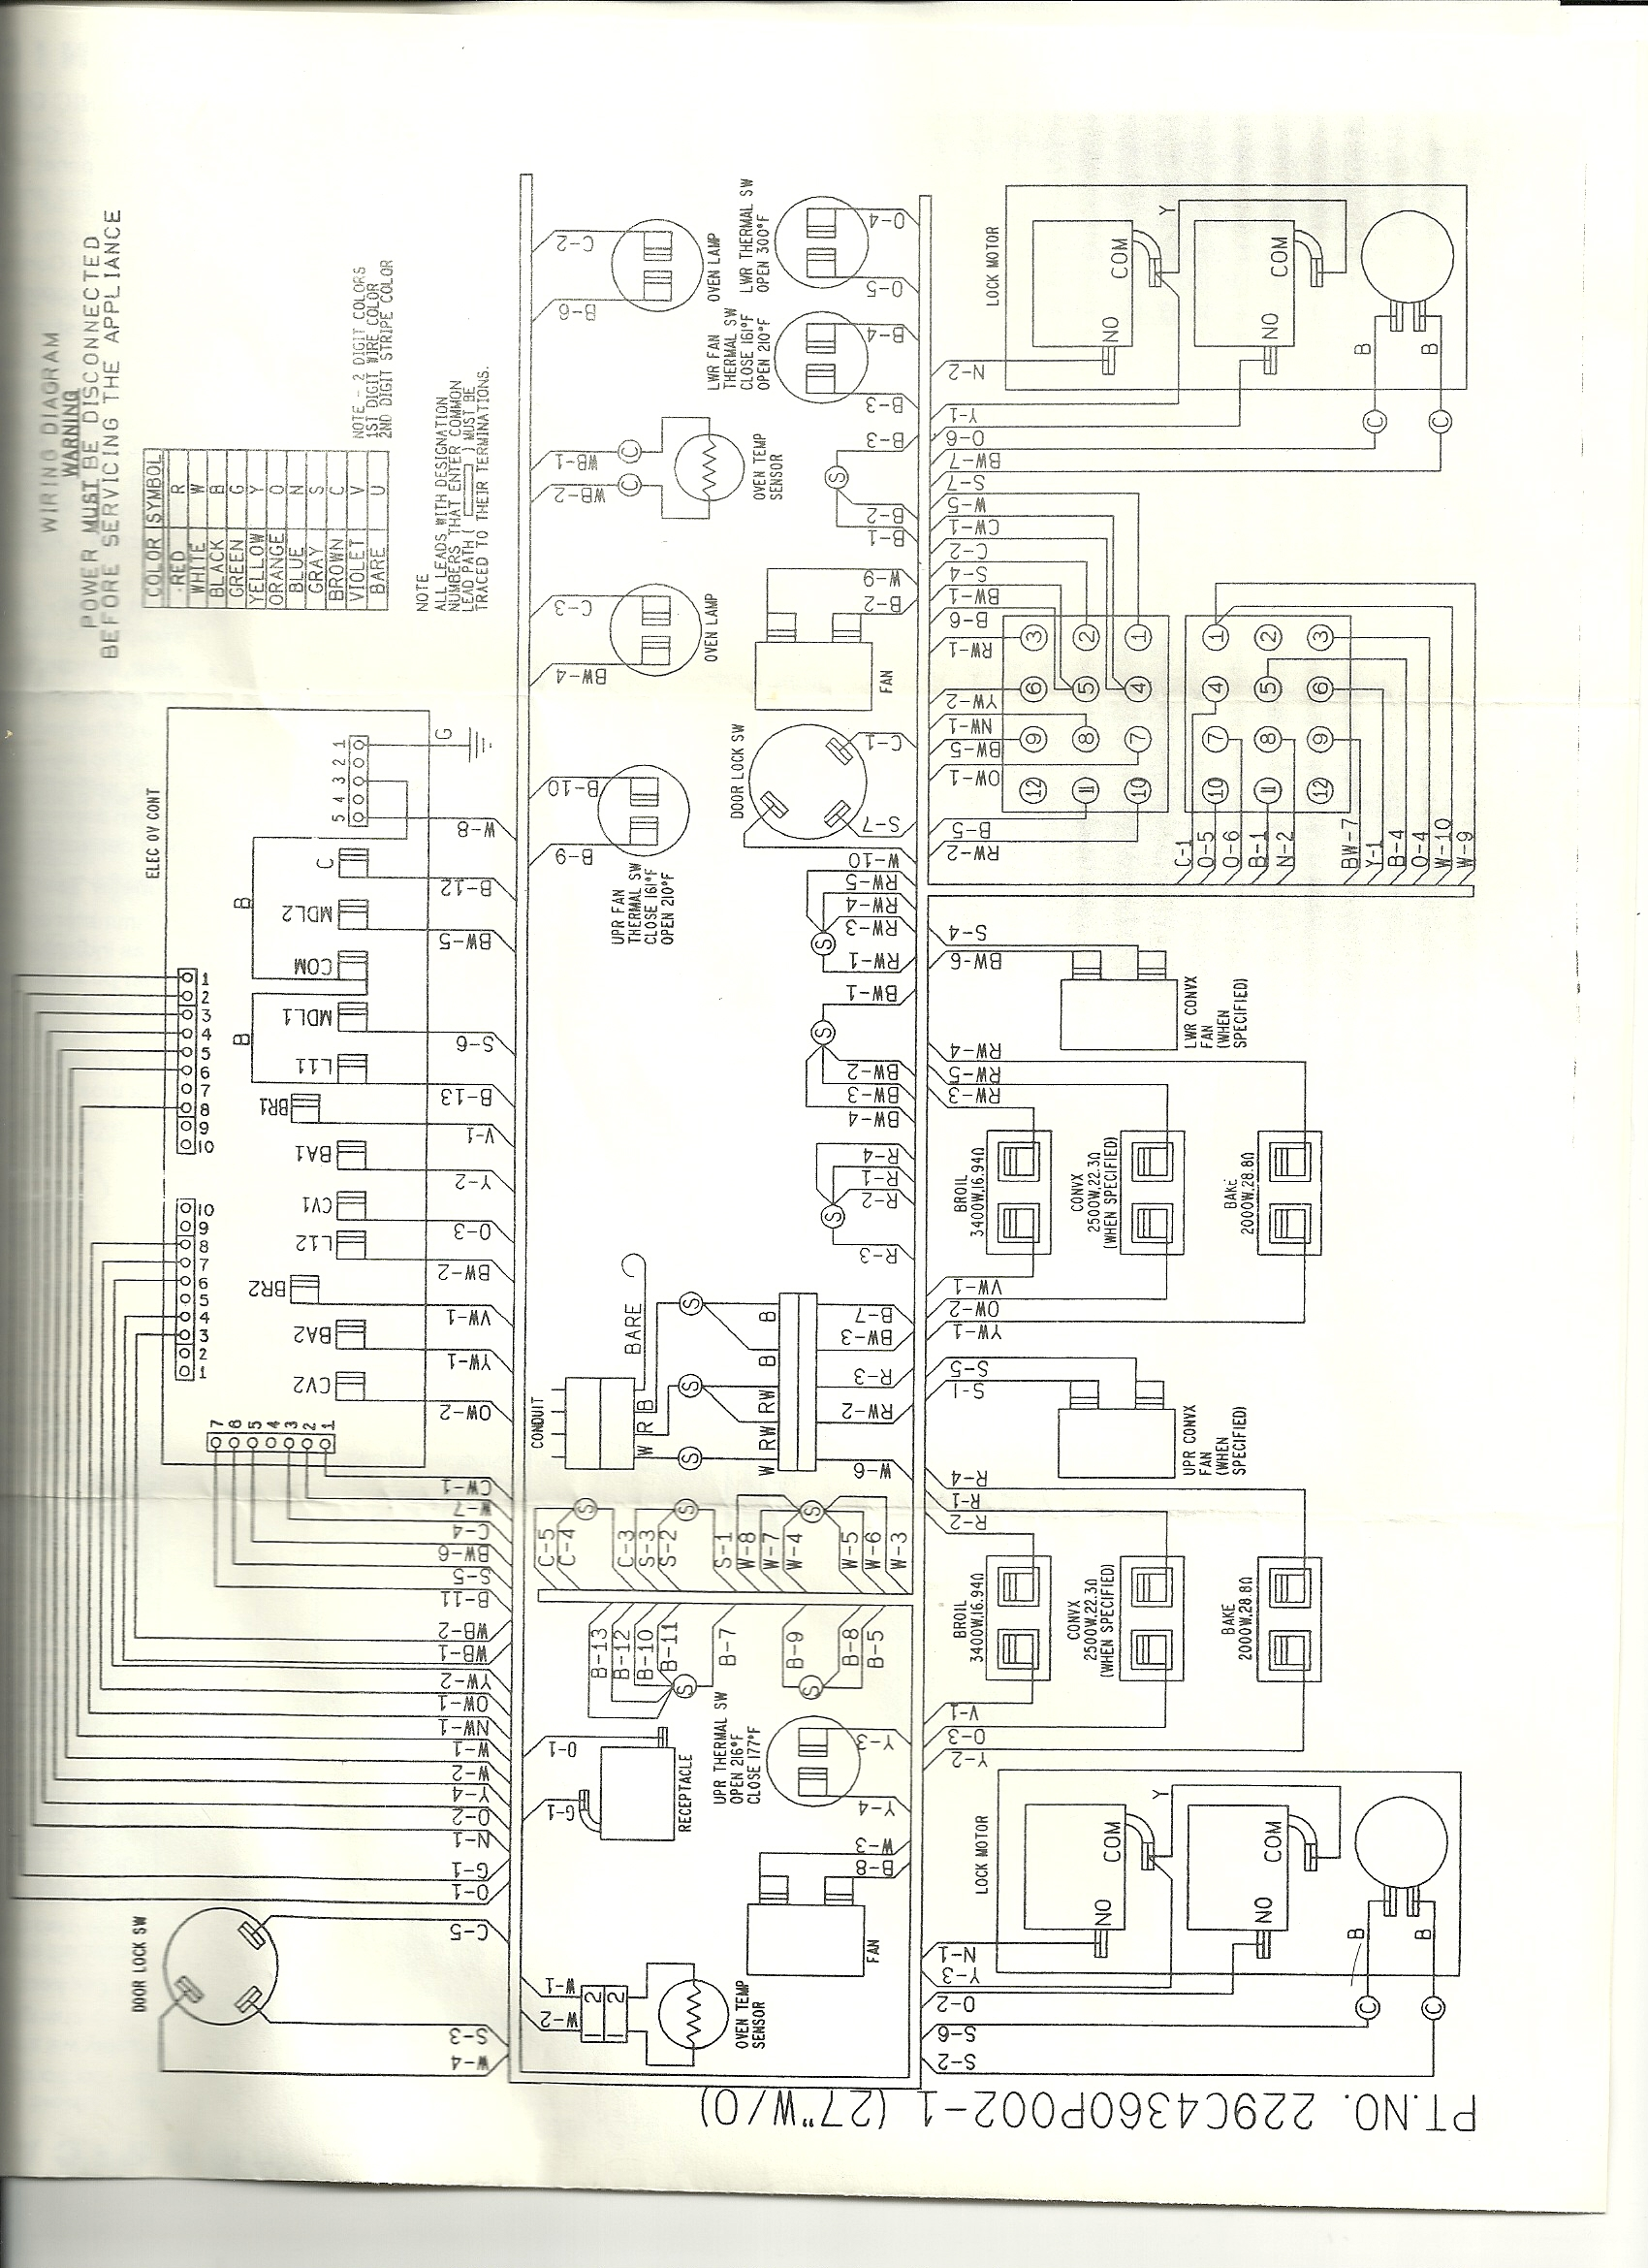 6b69 wiring diagram for sanyo dishwasher | wiring library  wiring library